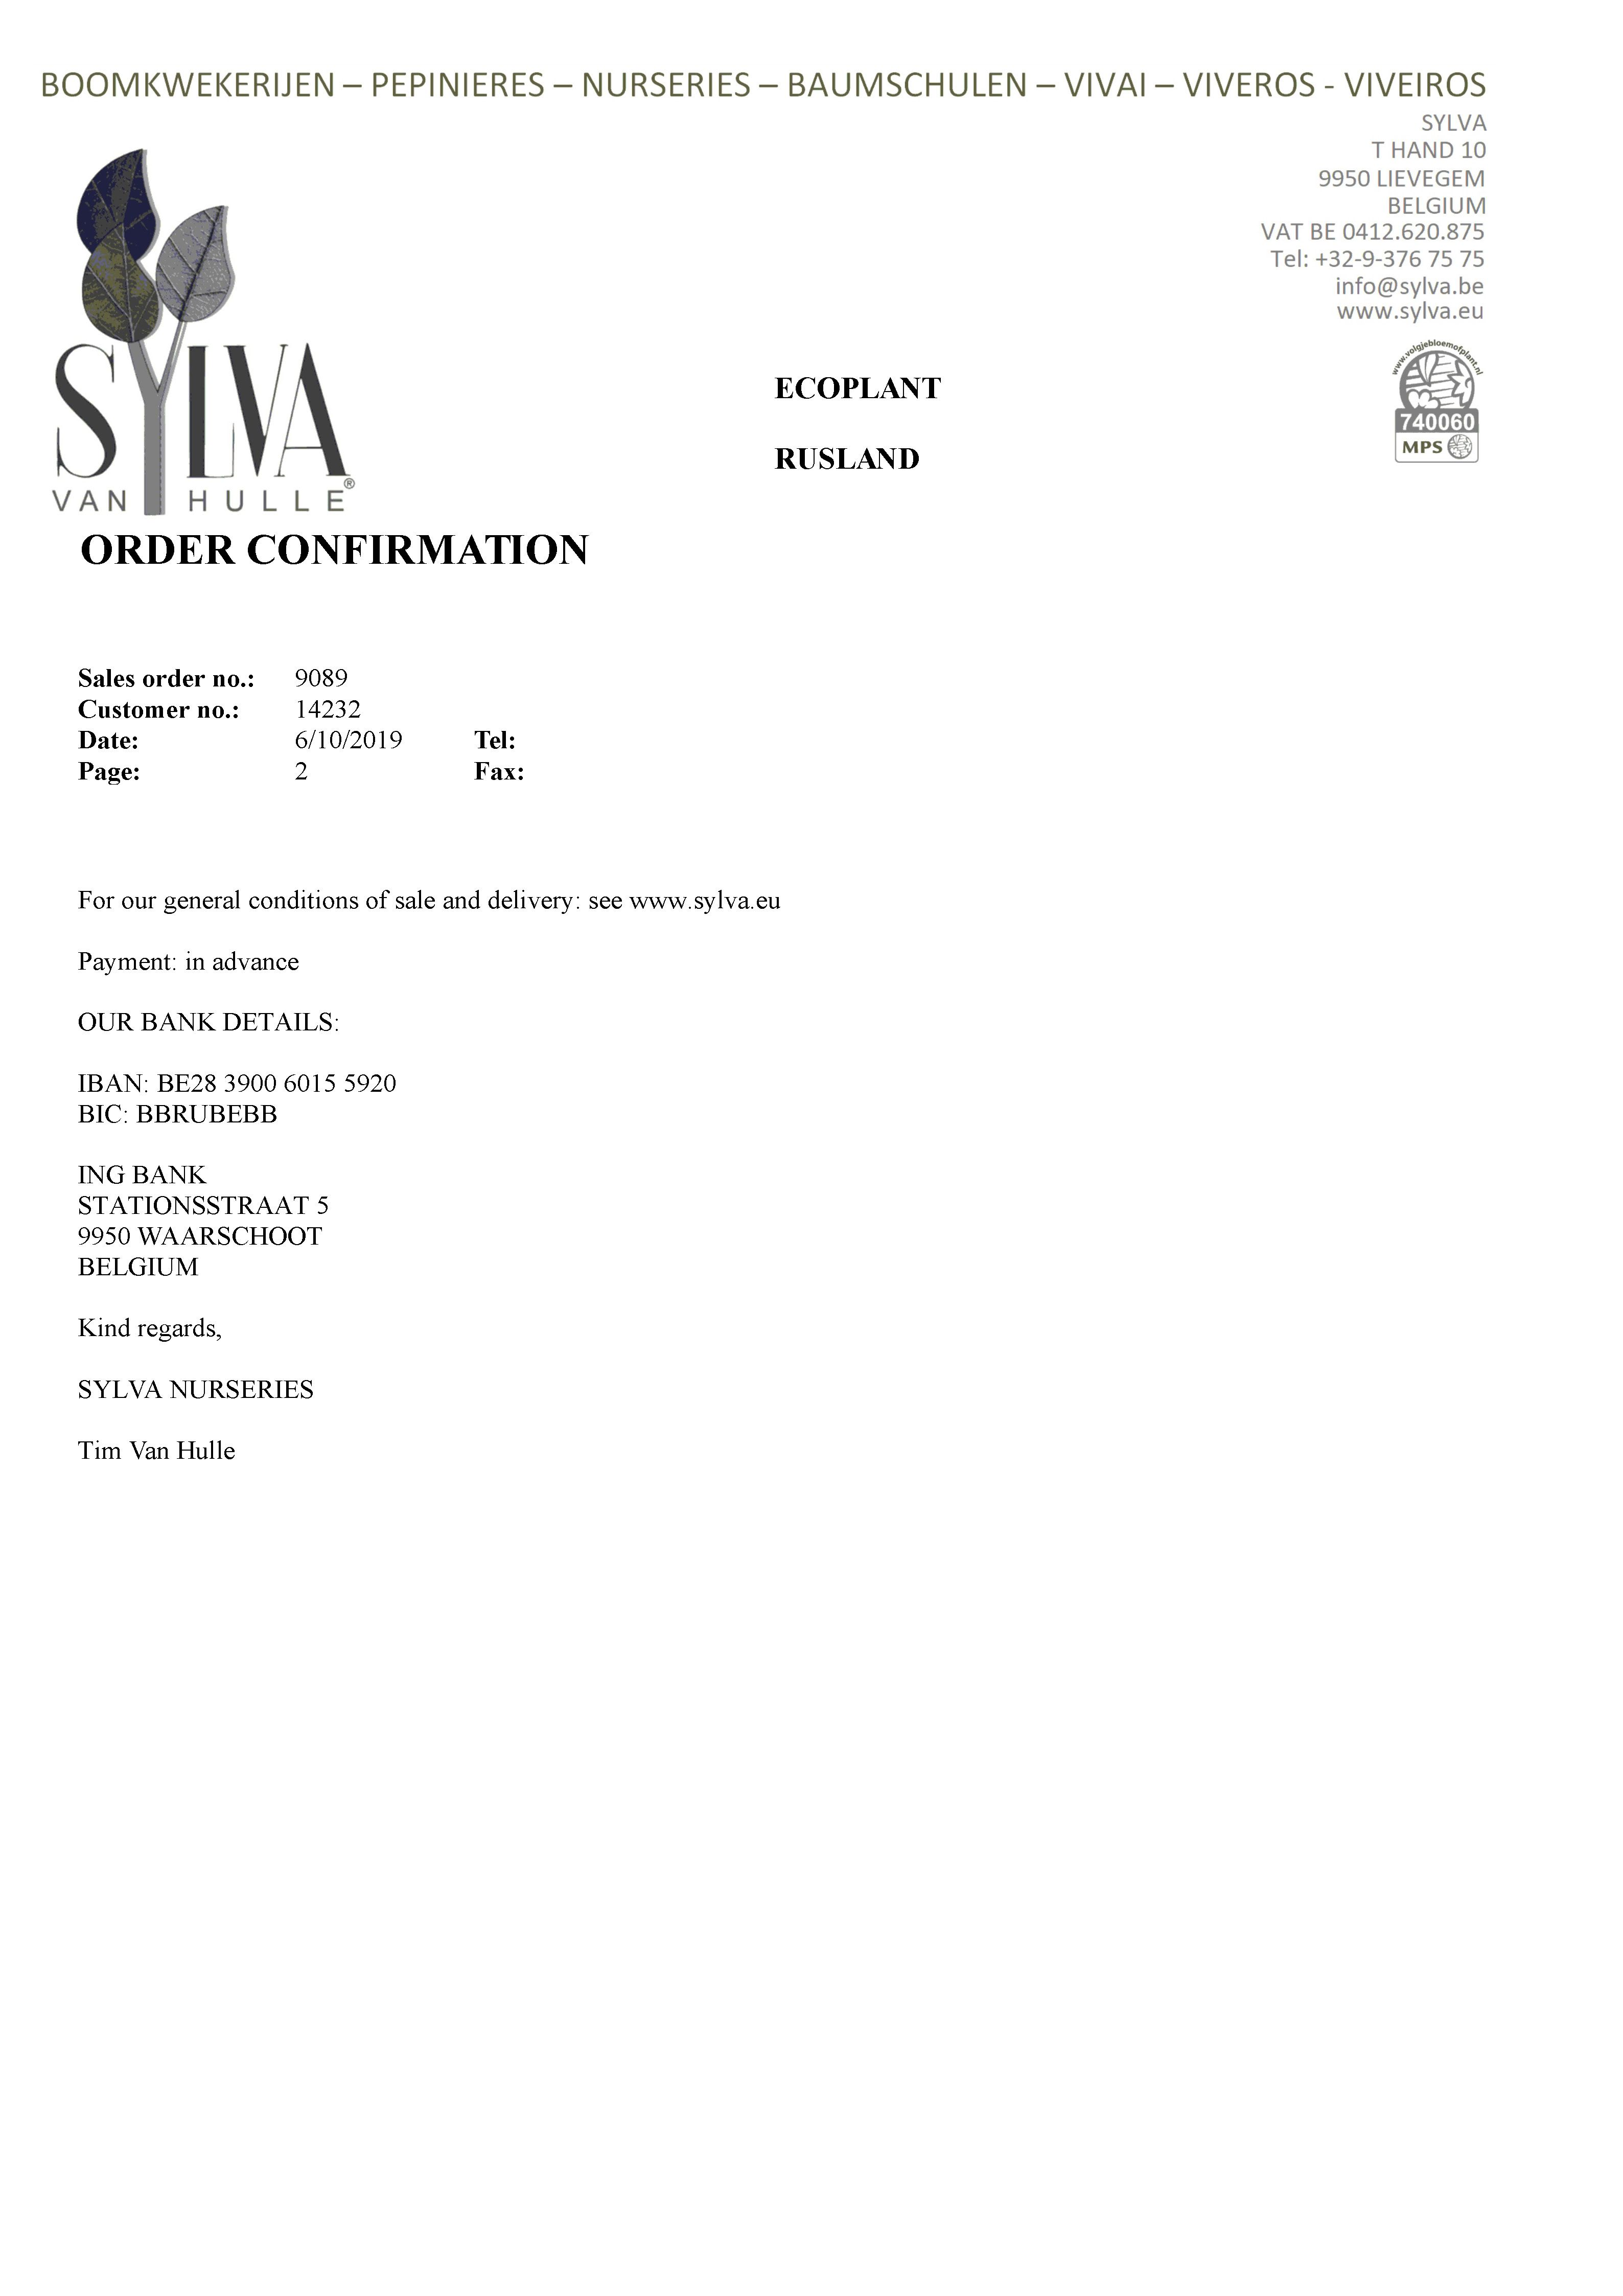 At The Endd Of The Site You Will Learn Sylva Plant Nursery Cheated Us And As The Result We Lost Contracts For 500 000 Euros In 2020 Plant Nursery Sylva Cheating